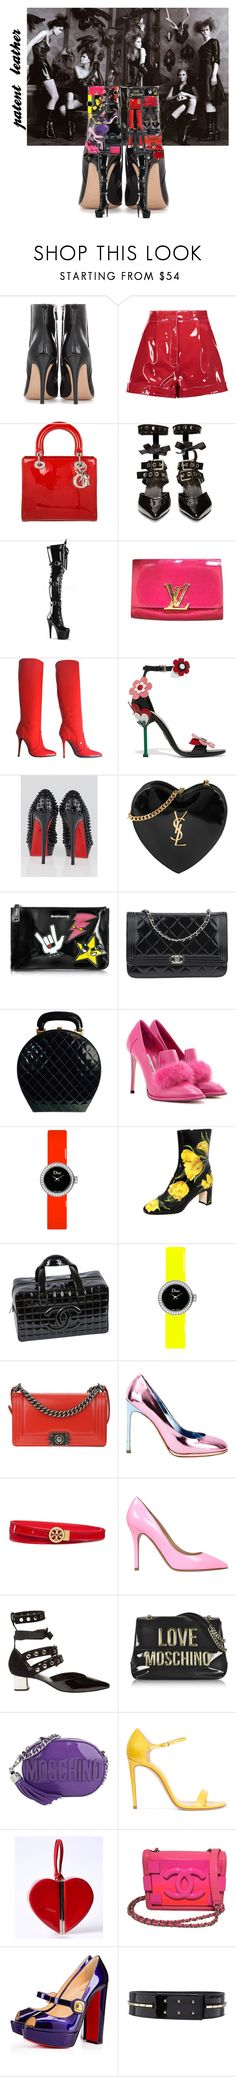 """""""patent leather"""" by jmadison1956 ❤ liked on Polyvore featuring Versace, Gianvito Rossi, Valentino, Christian Dior, Robert Clergerie, Louis Vuitton, Giuseppe Zanotti, Prada, Christian Louboutin and Yves Saint Laurent"""